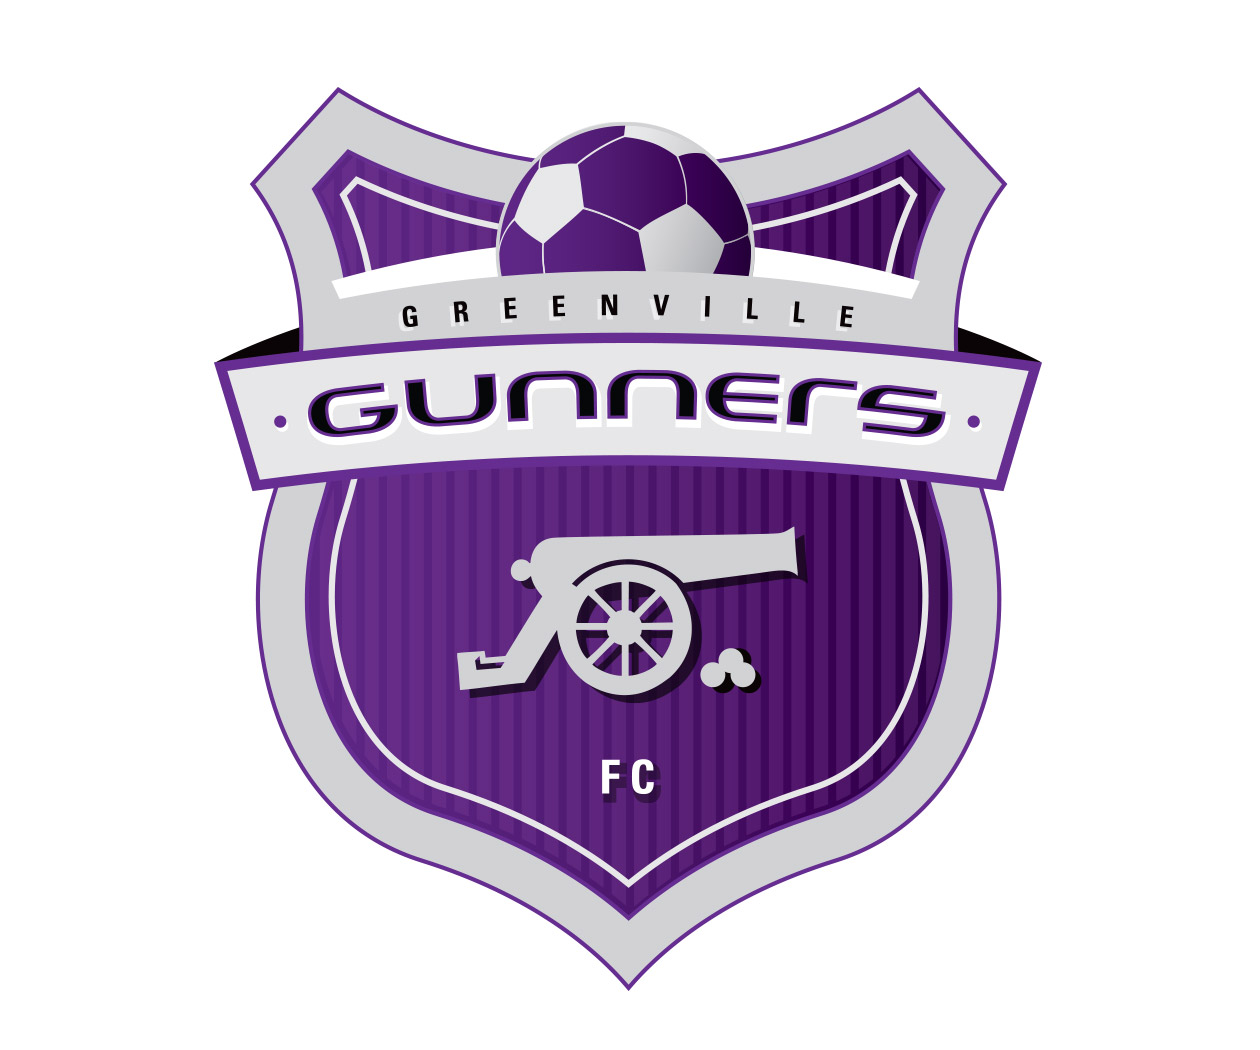 custom soccer logo design for the greenville gunners by jordan fretz design